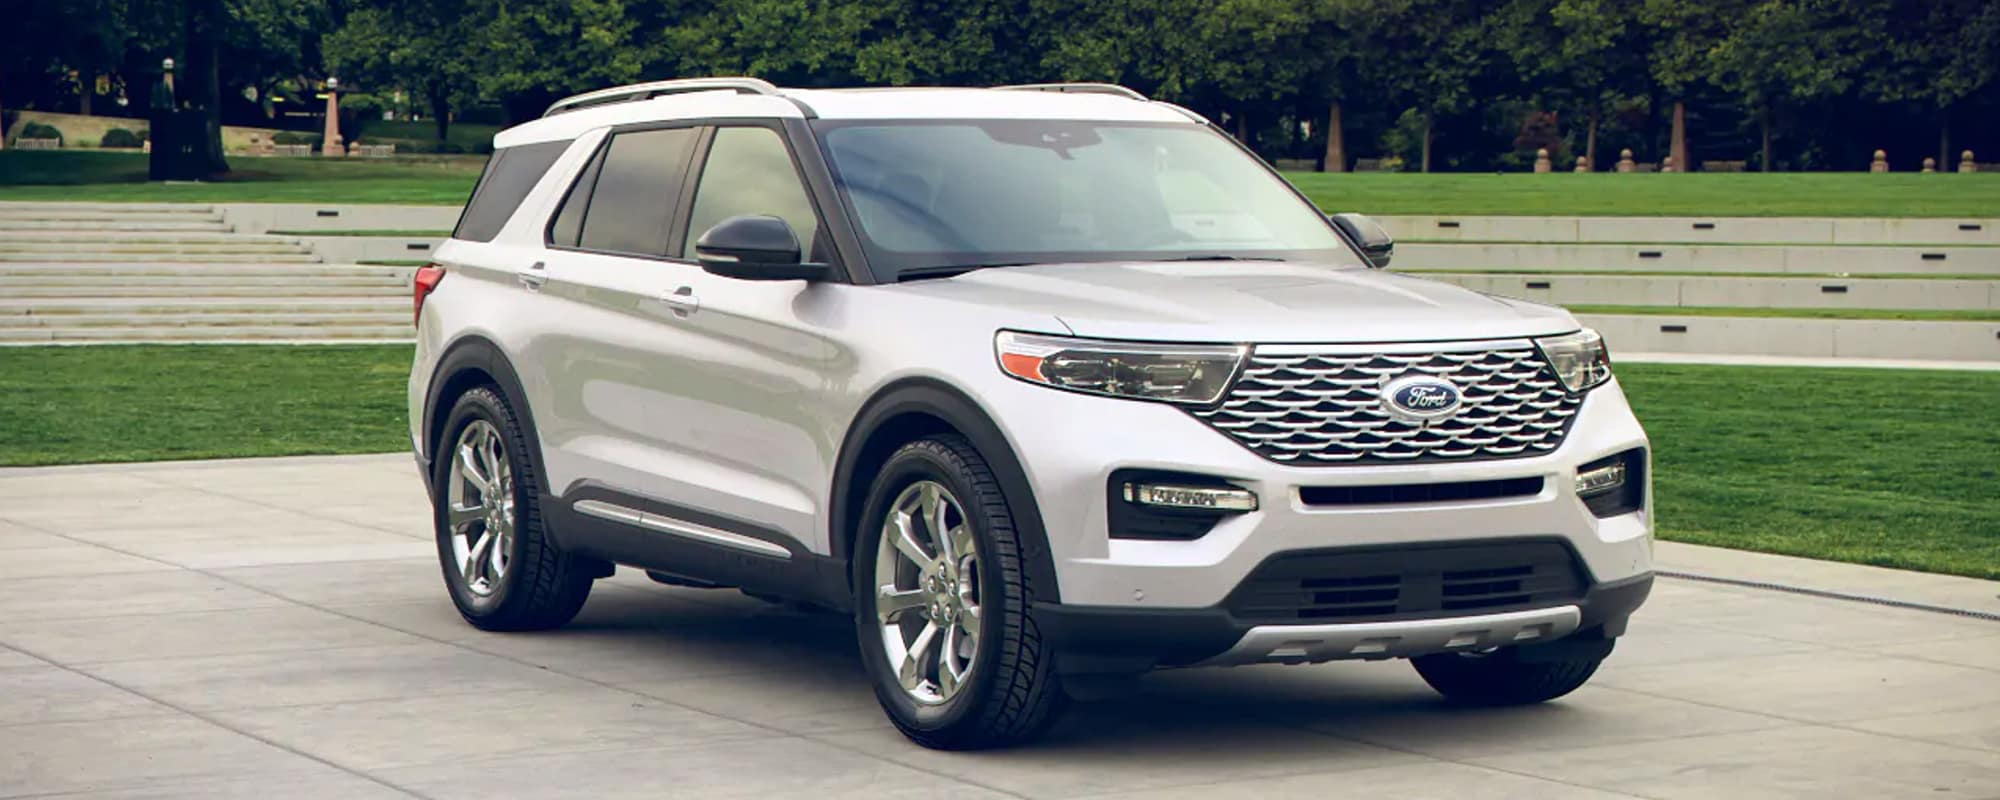 The 2020 Ford Explorer | Keystone Ford, Your Car Dealership